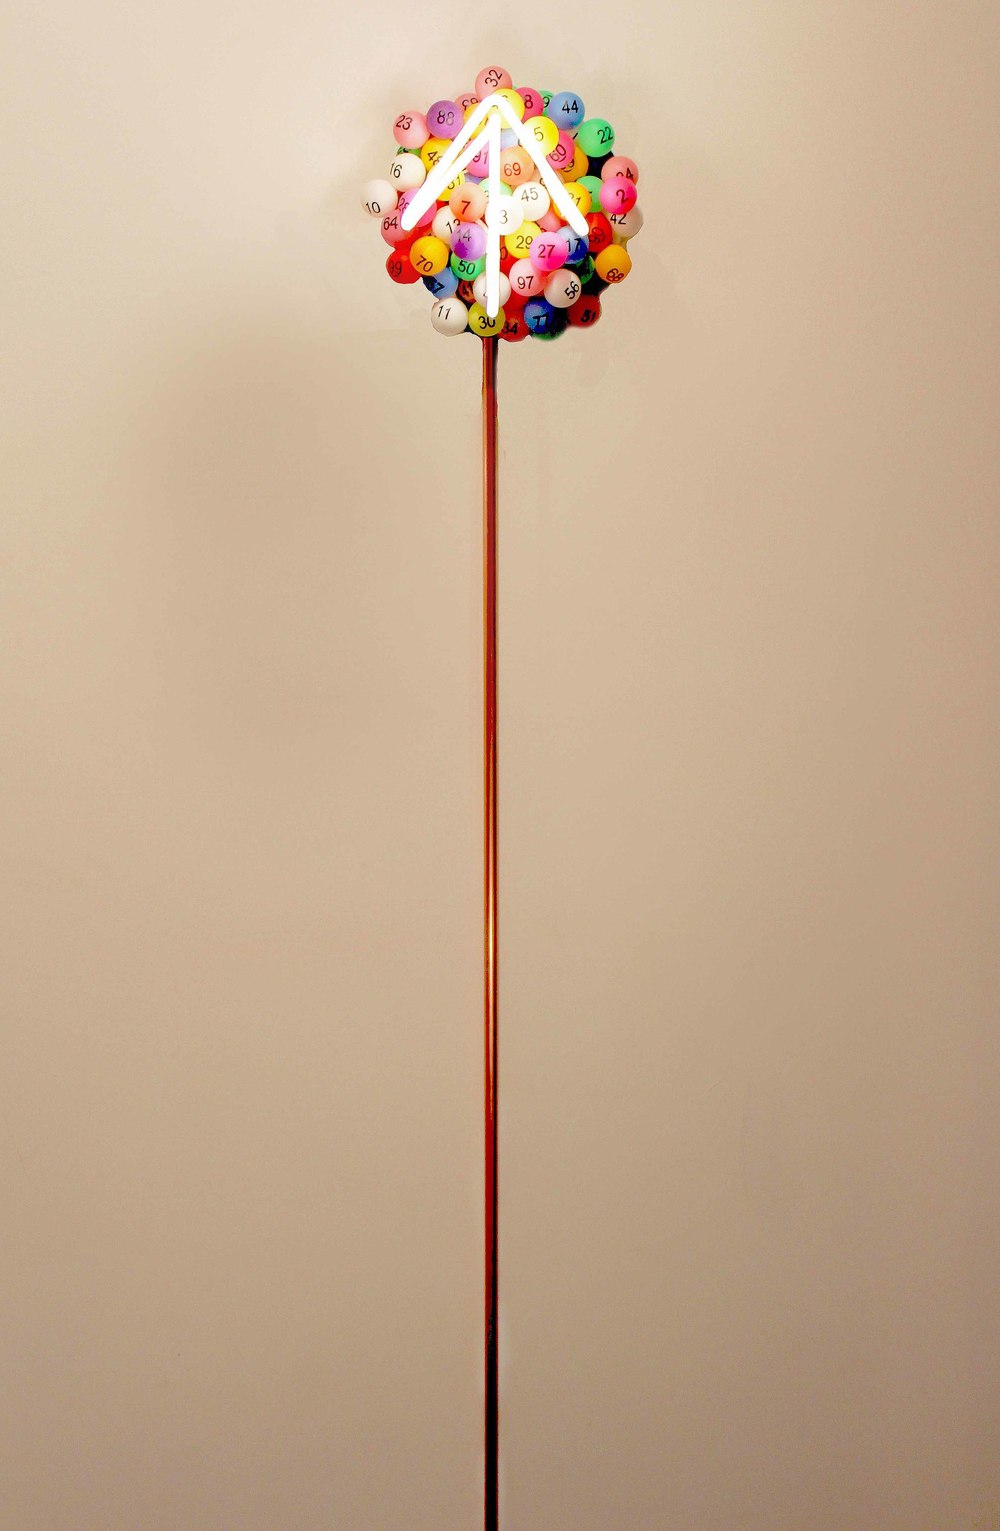 "Chance, 2016. Neon, lottery balls, and copper. 10 x 10 x 4 inches. Top fixture has a 10"" diameter and the entire piece is 6' tall. Hangs from wall."